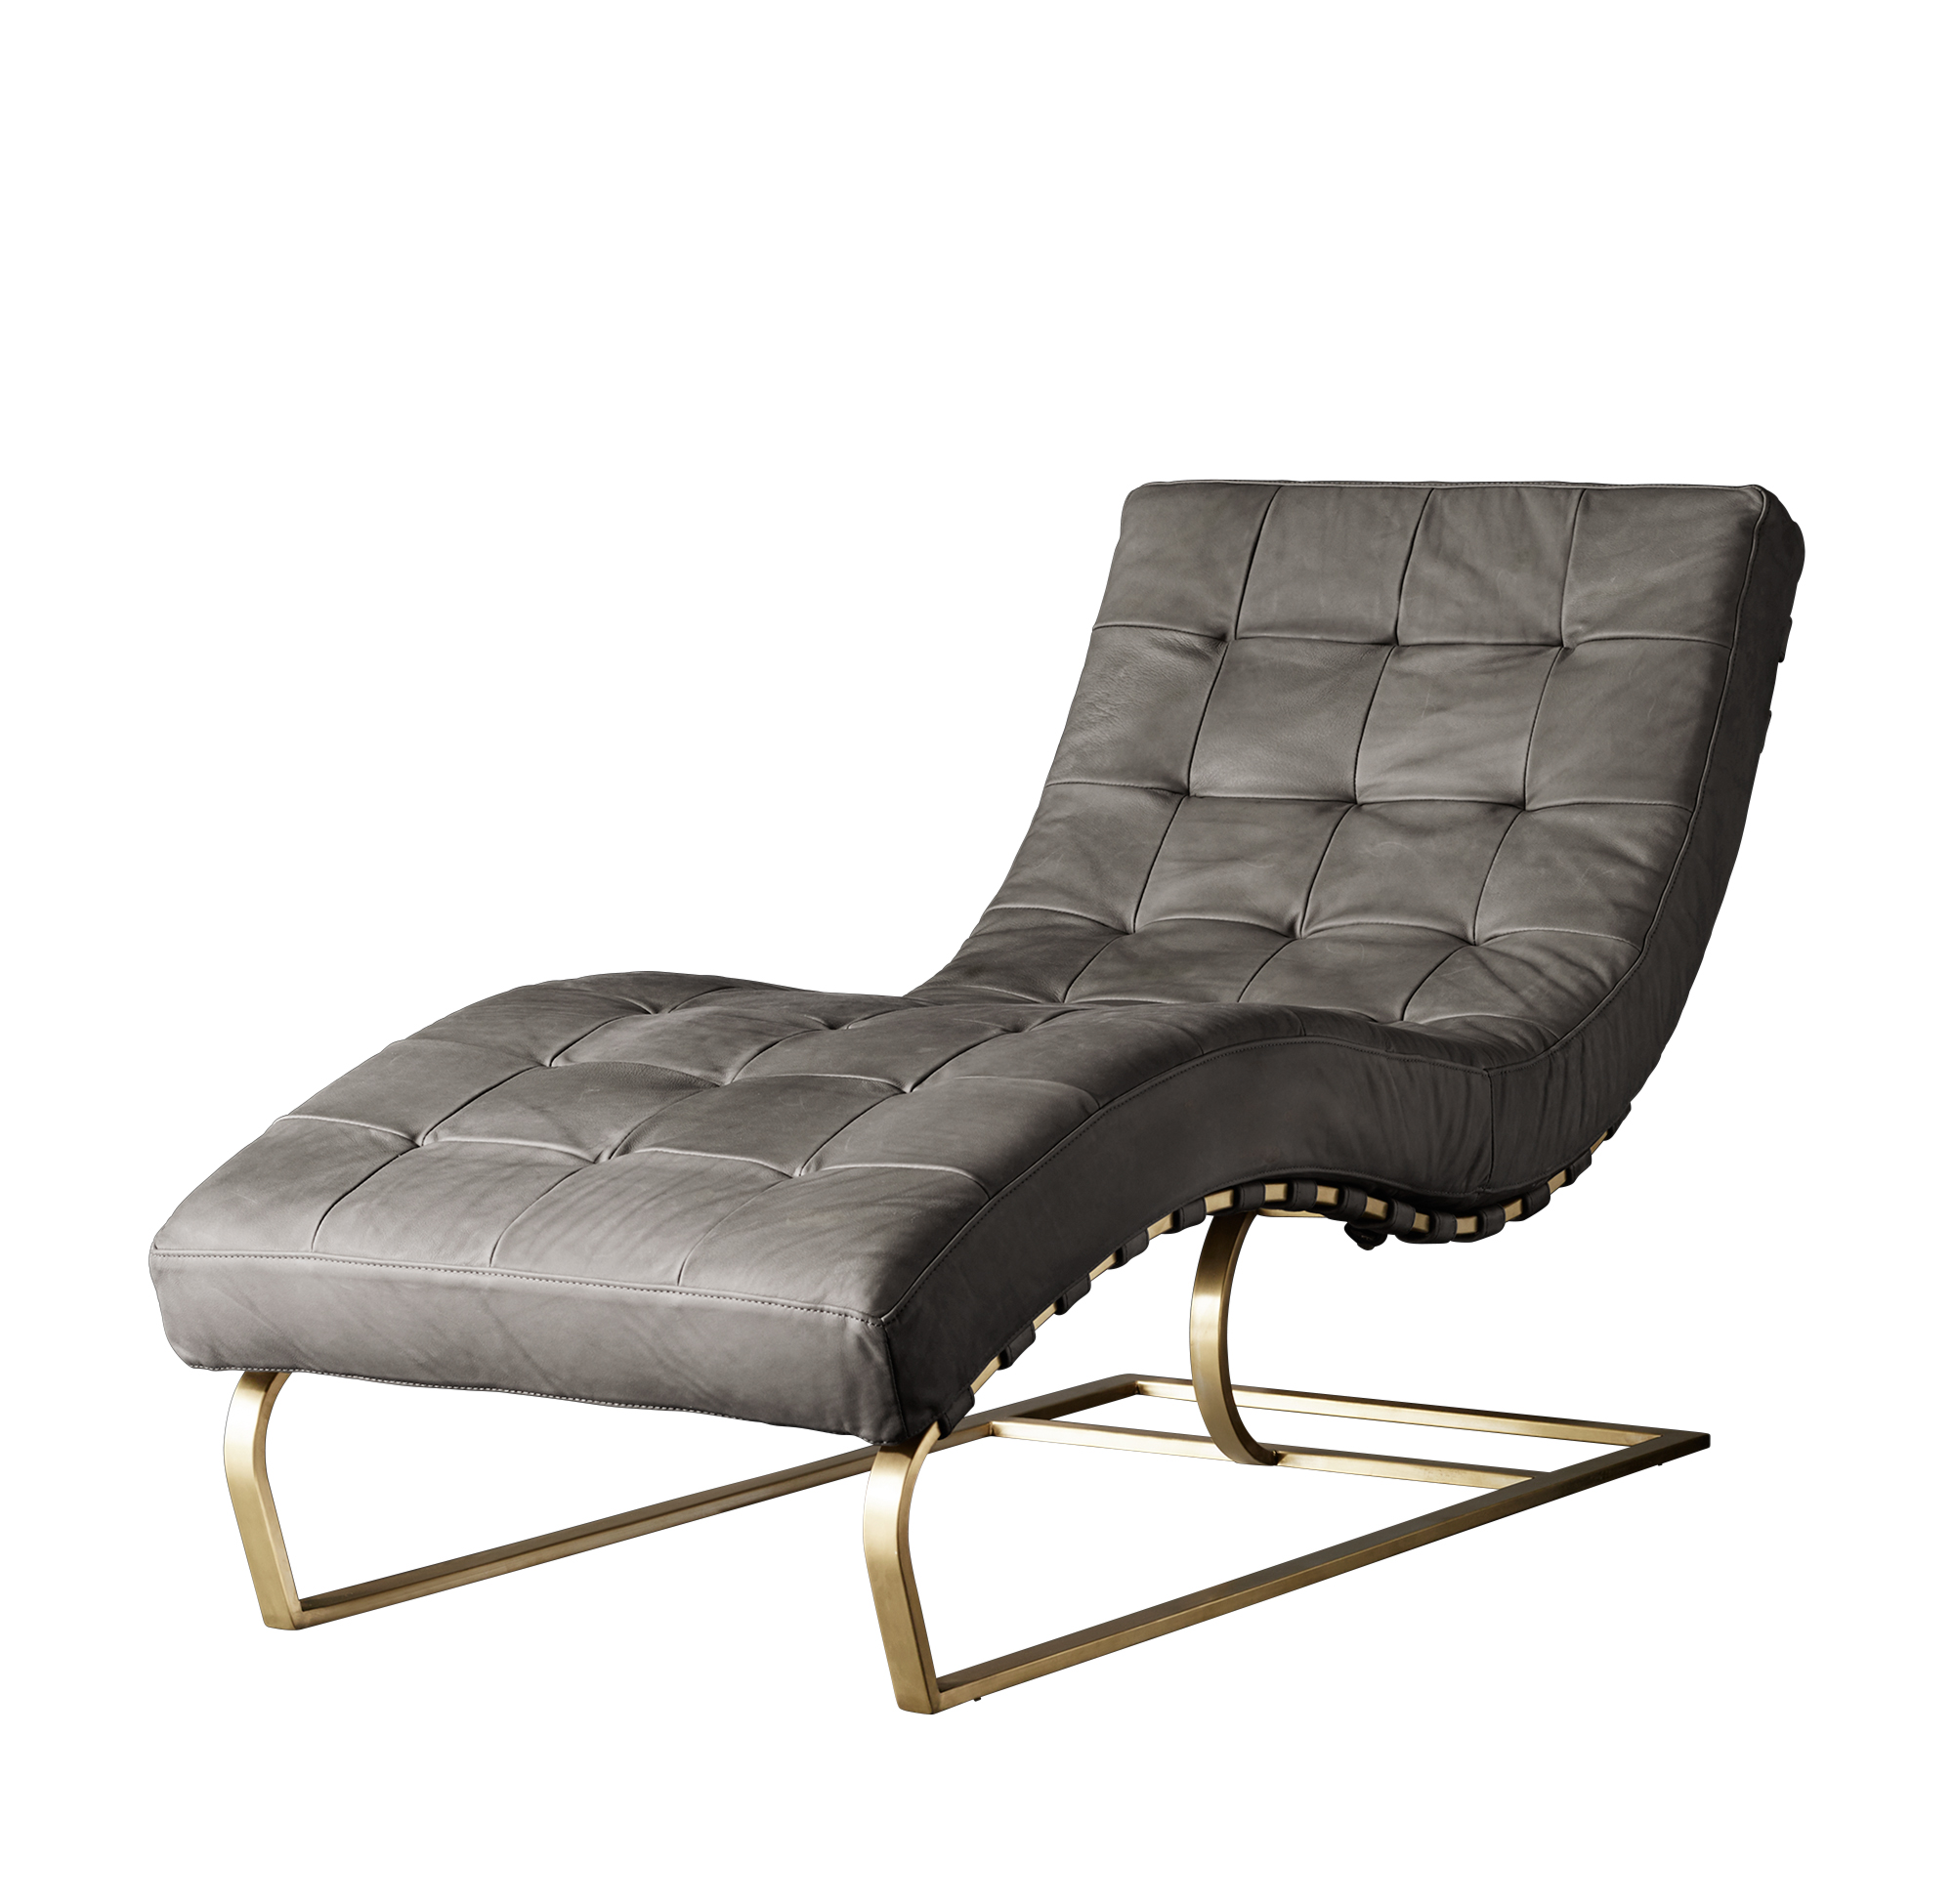 ROSSI TUFTED LEATHER CHAISE (RHModern.com)-2